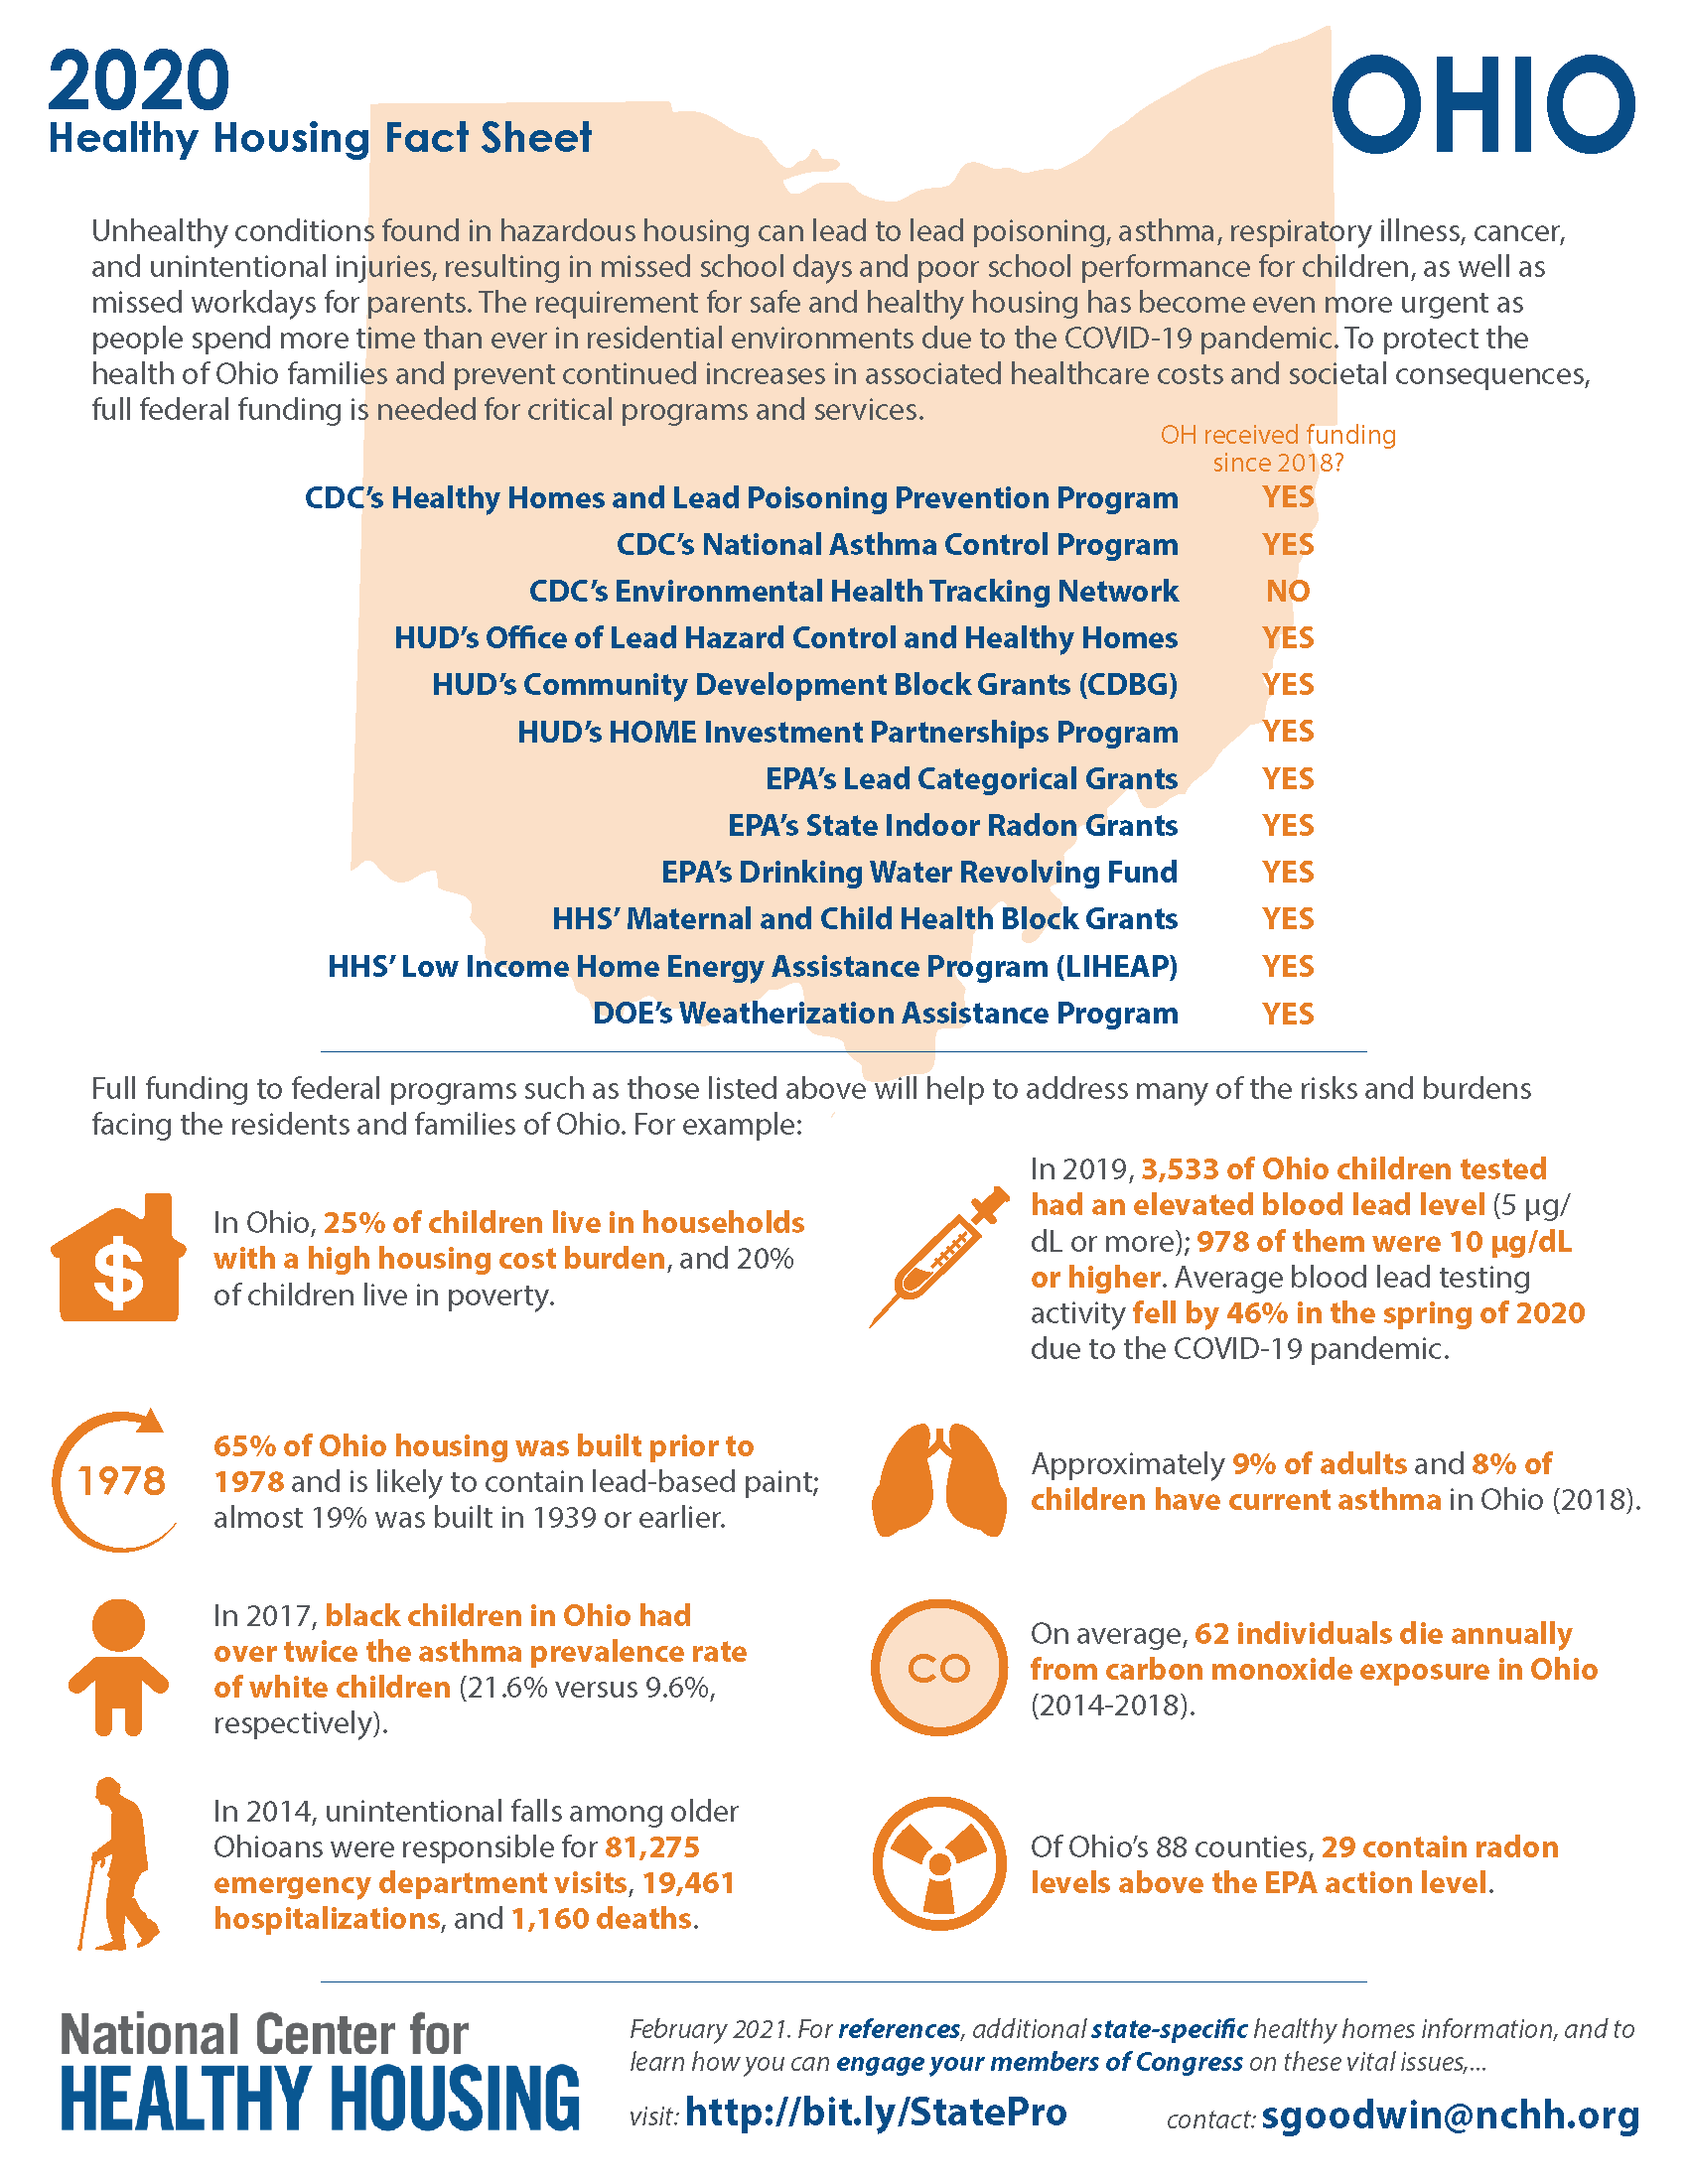 Healthy Housing Fact Sheet - Ohio 2020